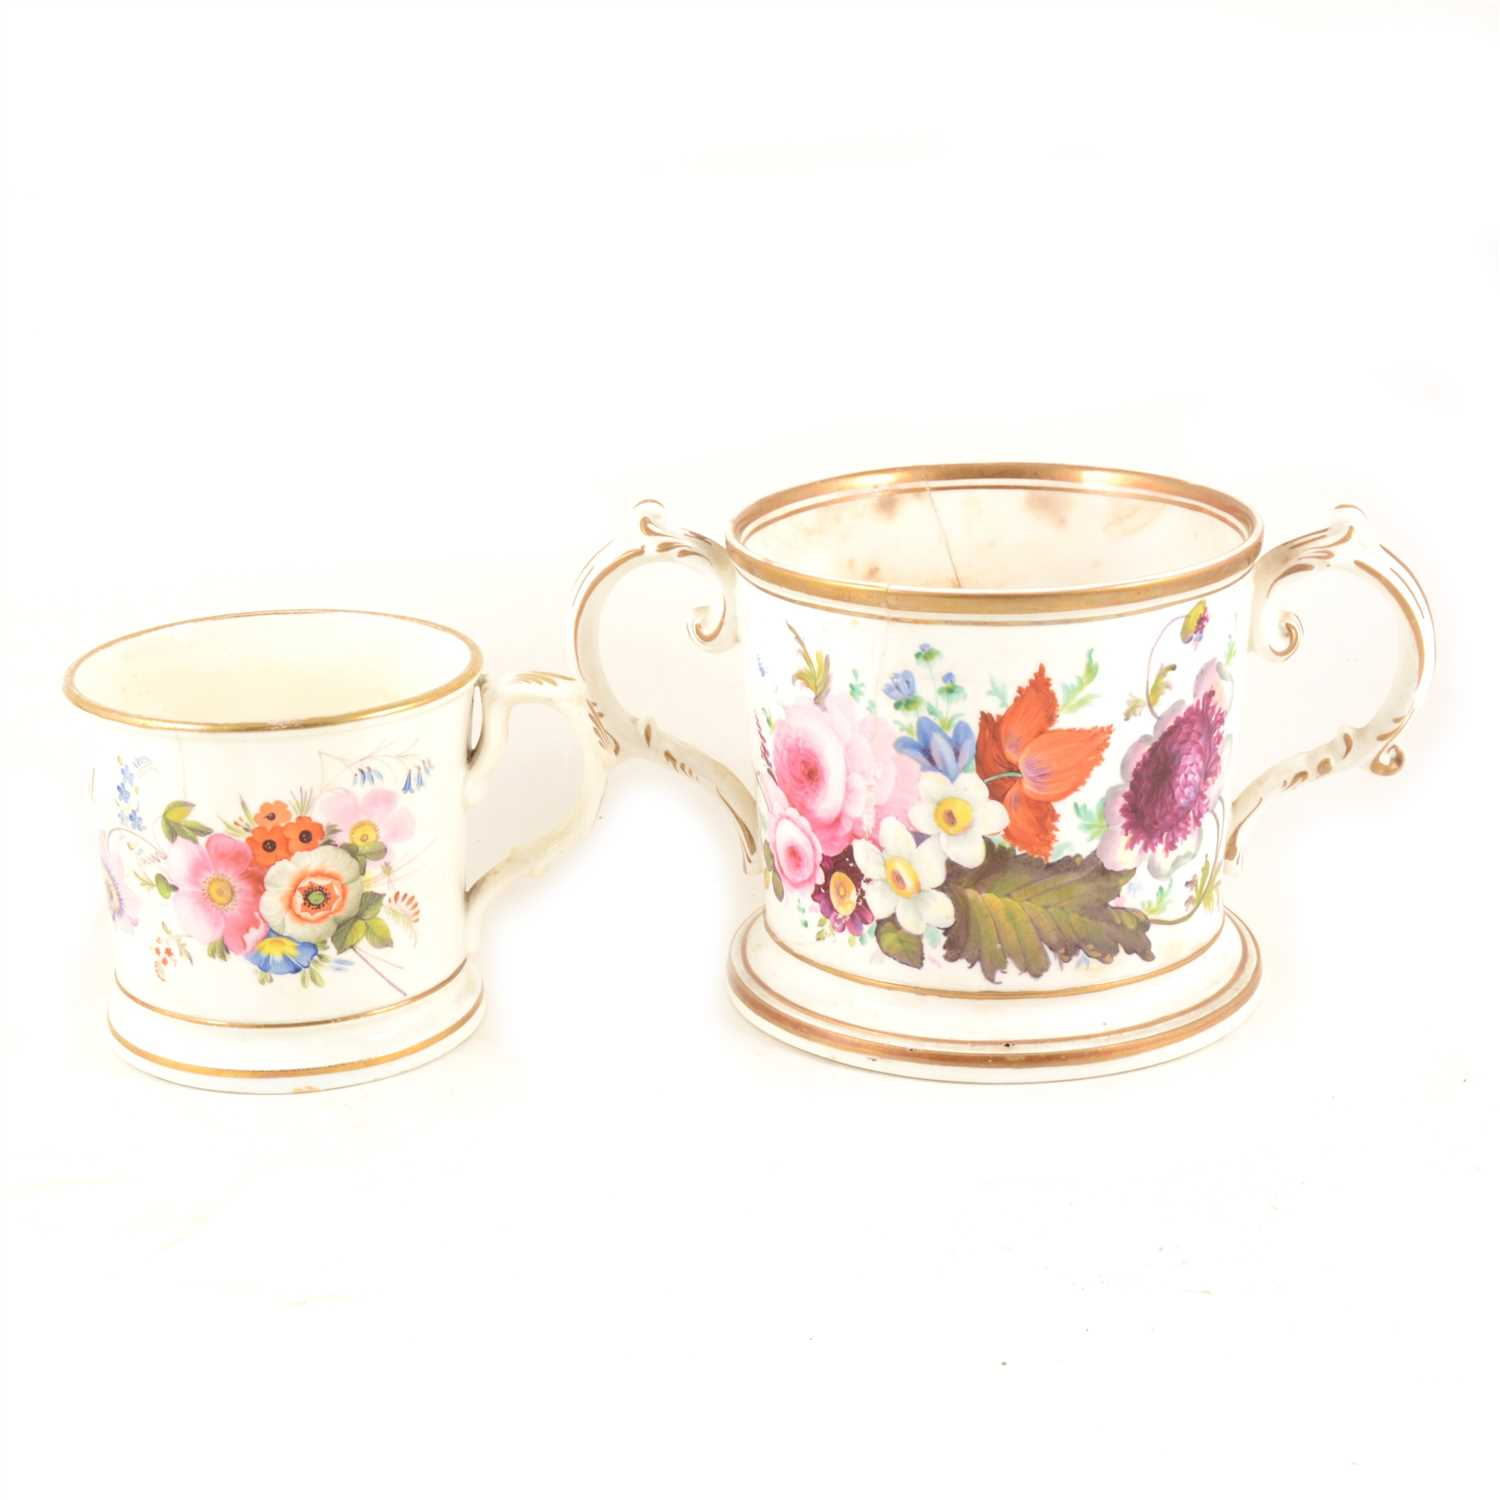 "Lot 33-A Worcester porcelain twin handled mug hand painted with flowers and gilt highlights, 12.5cm high, 21.5cm diameter, plus a smaller mug with the inscription ""Joseph Wood 1843"""